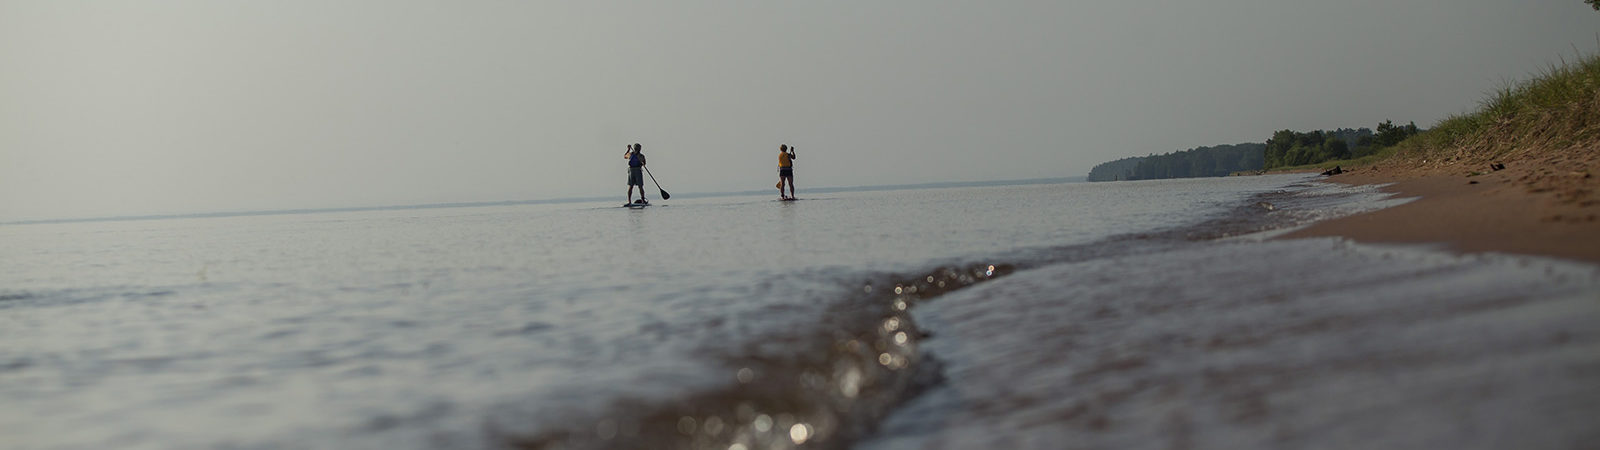 Two paddle boarders on Lake Superior